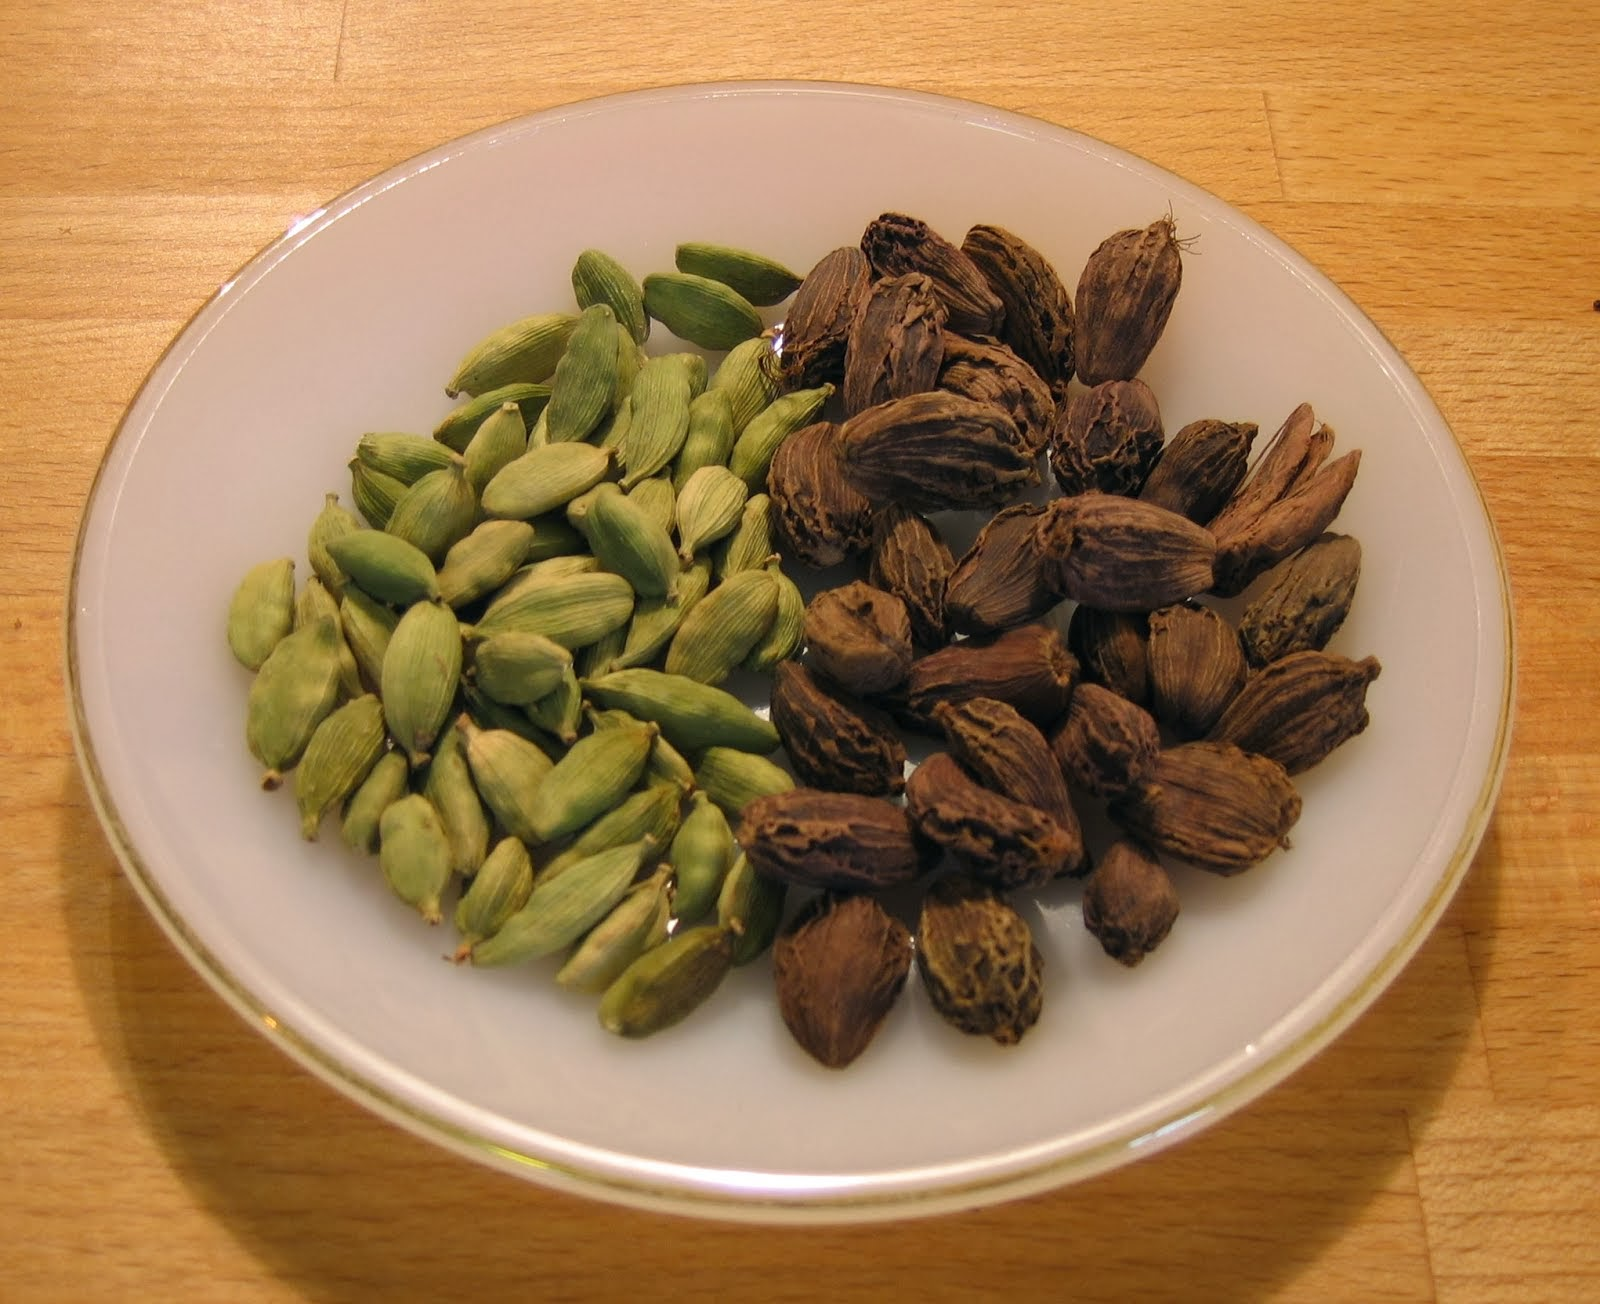 Green and black cardamoms